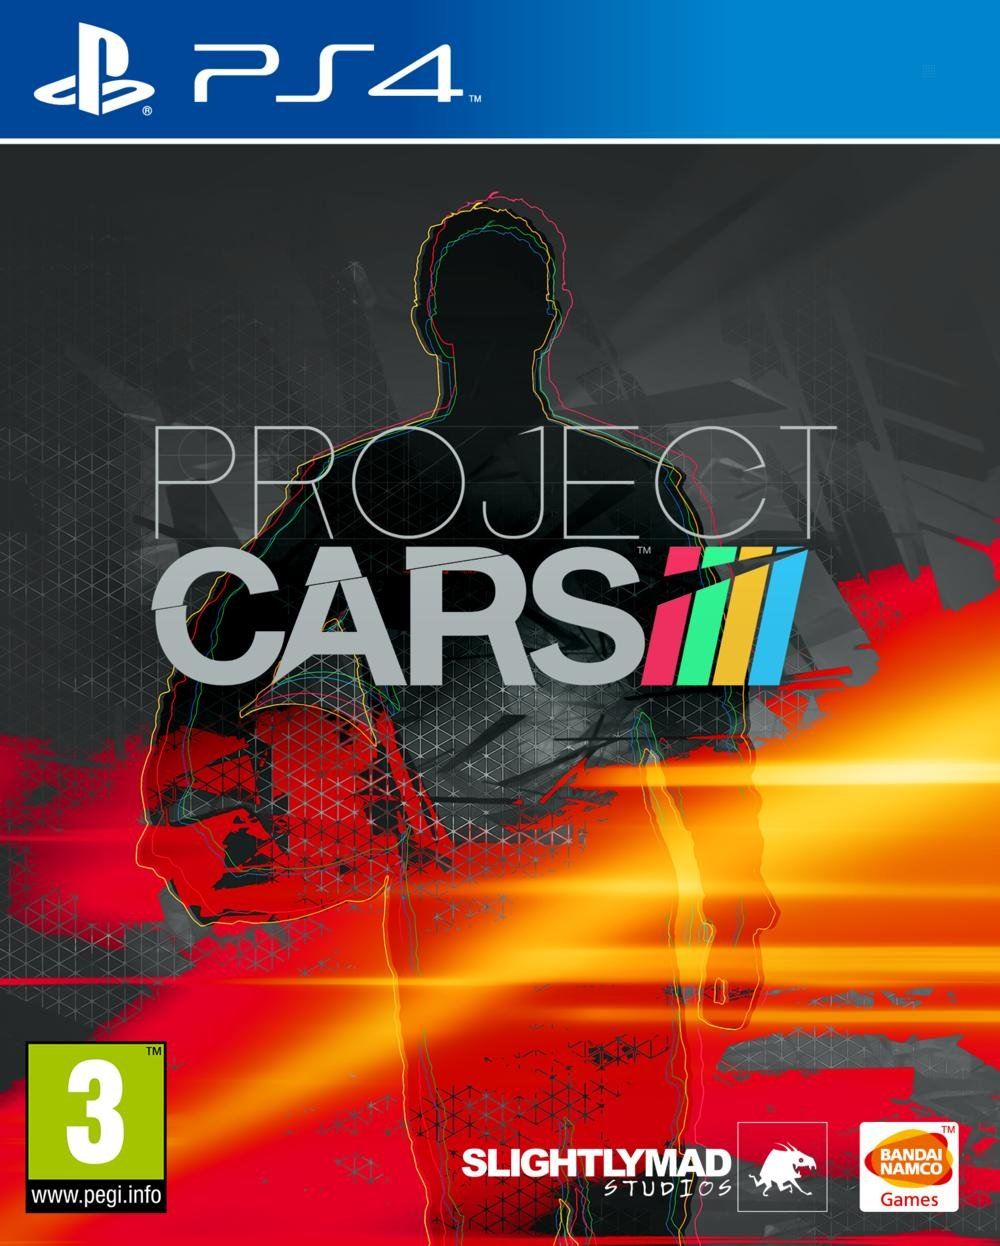 Project Cars - PS4 | Slightly Mad Studios. Programmeur